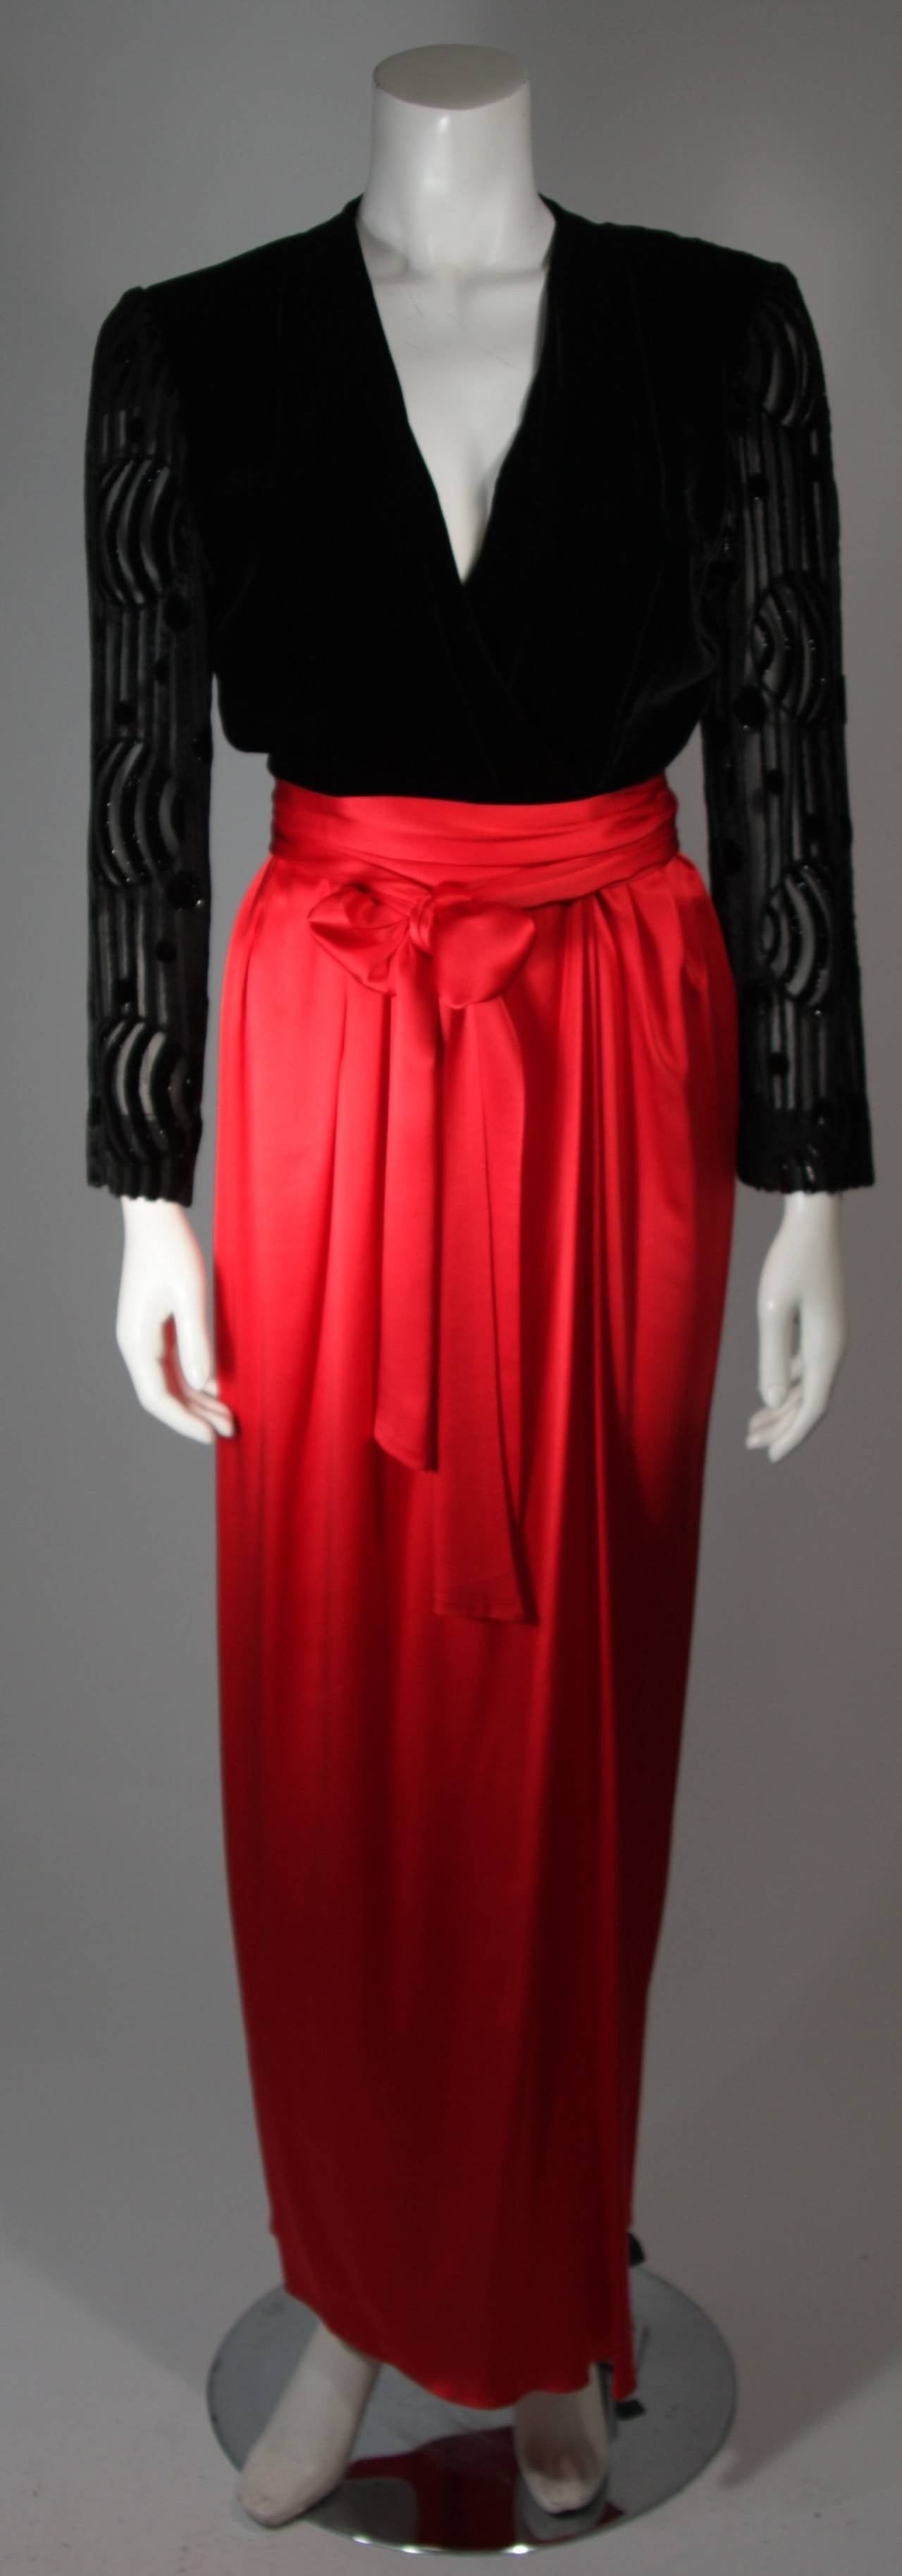 This Adele Simpson gown is an absolute show stopper. It is fashioned with a black velvet bodice with burnout detail and a vibrant true red silk skirt. There are center front openings. In excellent condition and an absolute beauty. 